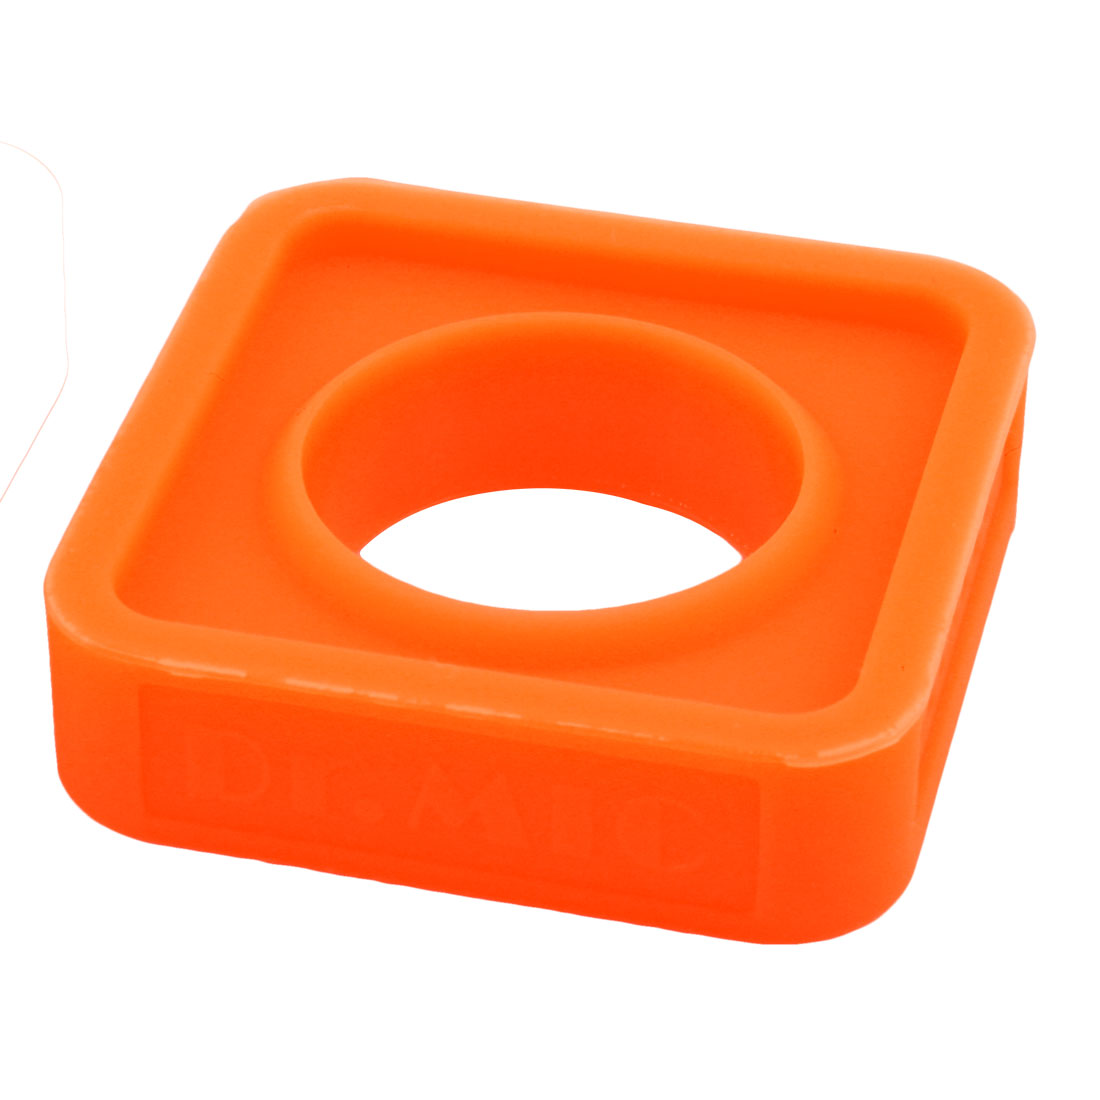 Home KTV Silicone Rectangle Shake Resistant Microphone Protection Ring Orange